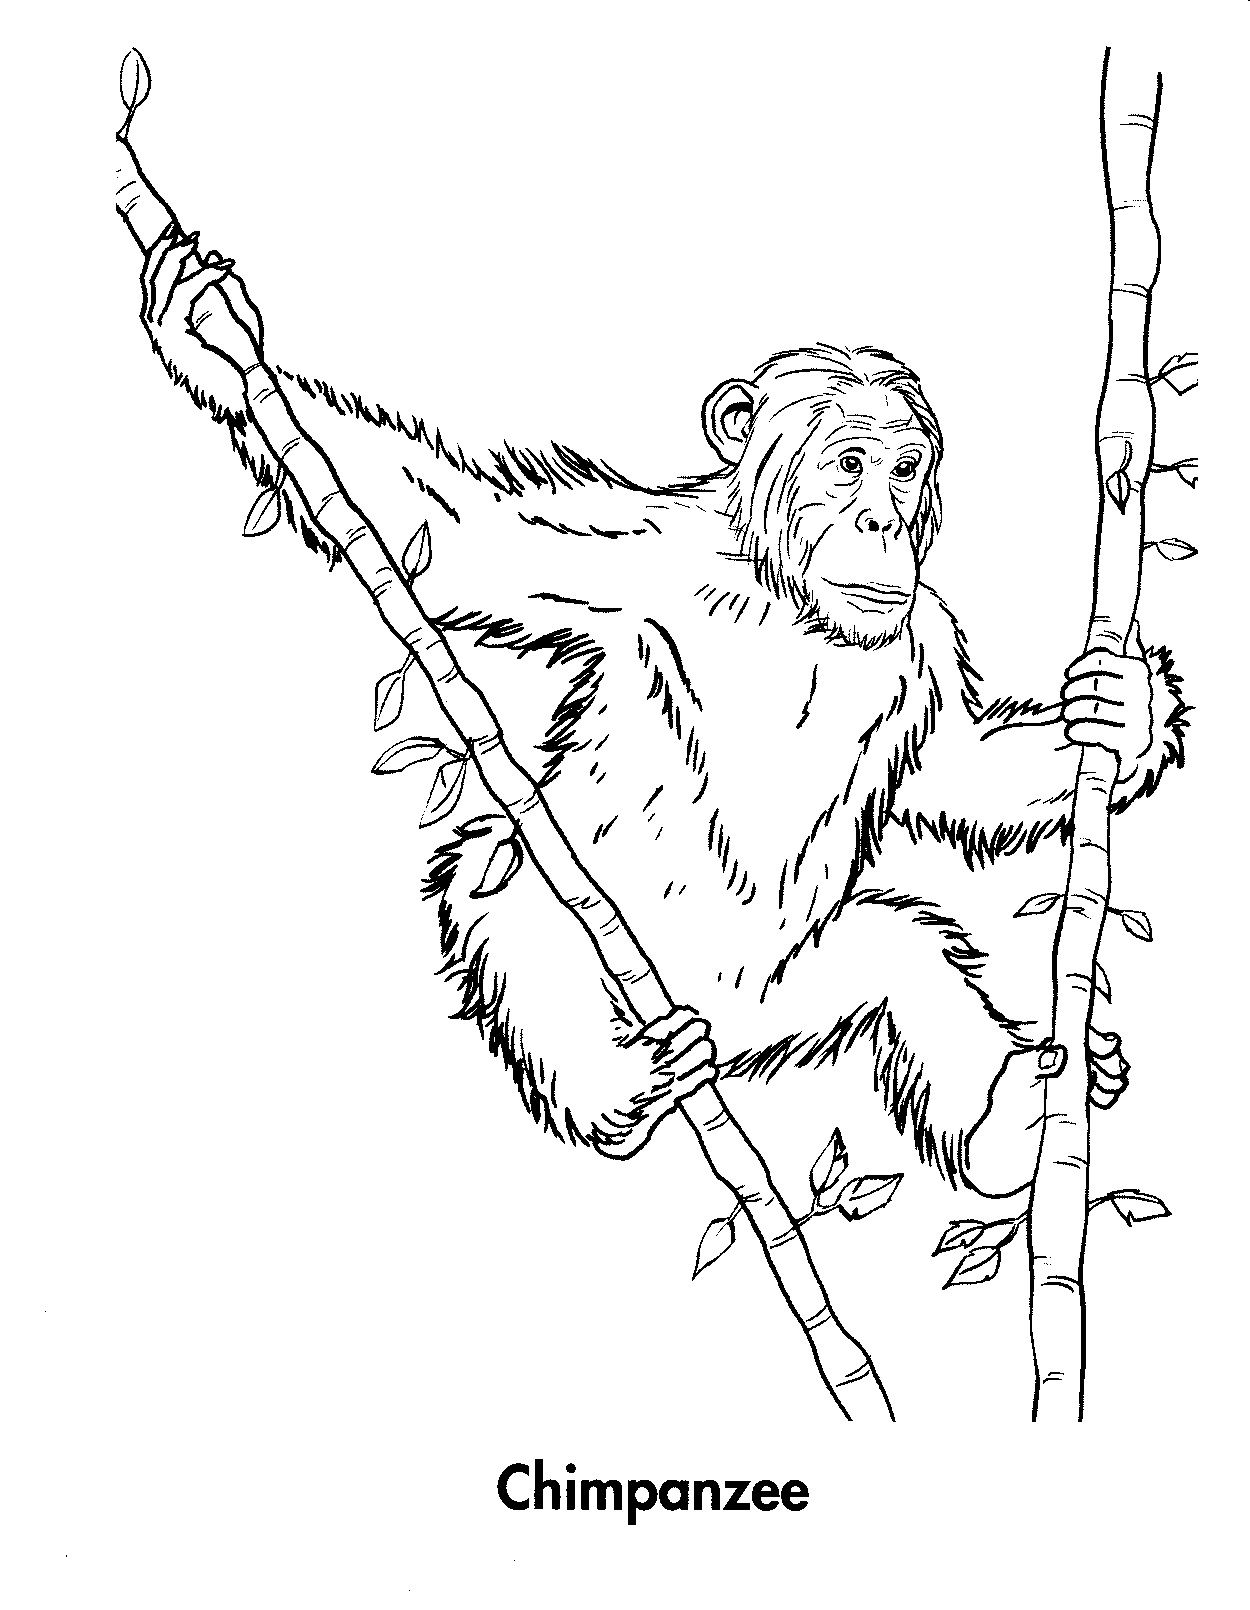 Free Printable Chimpanzee Coloring Pages For Kids | Coloring pages ...